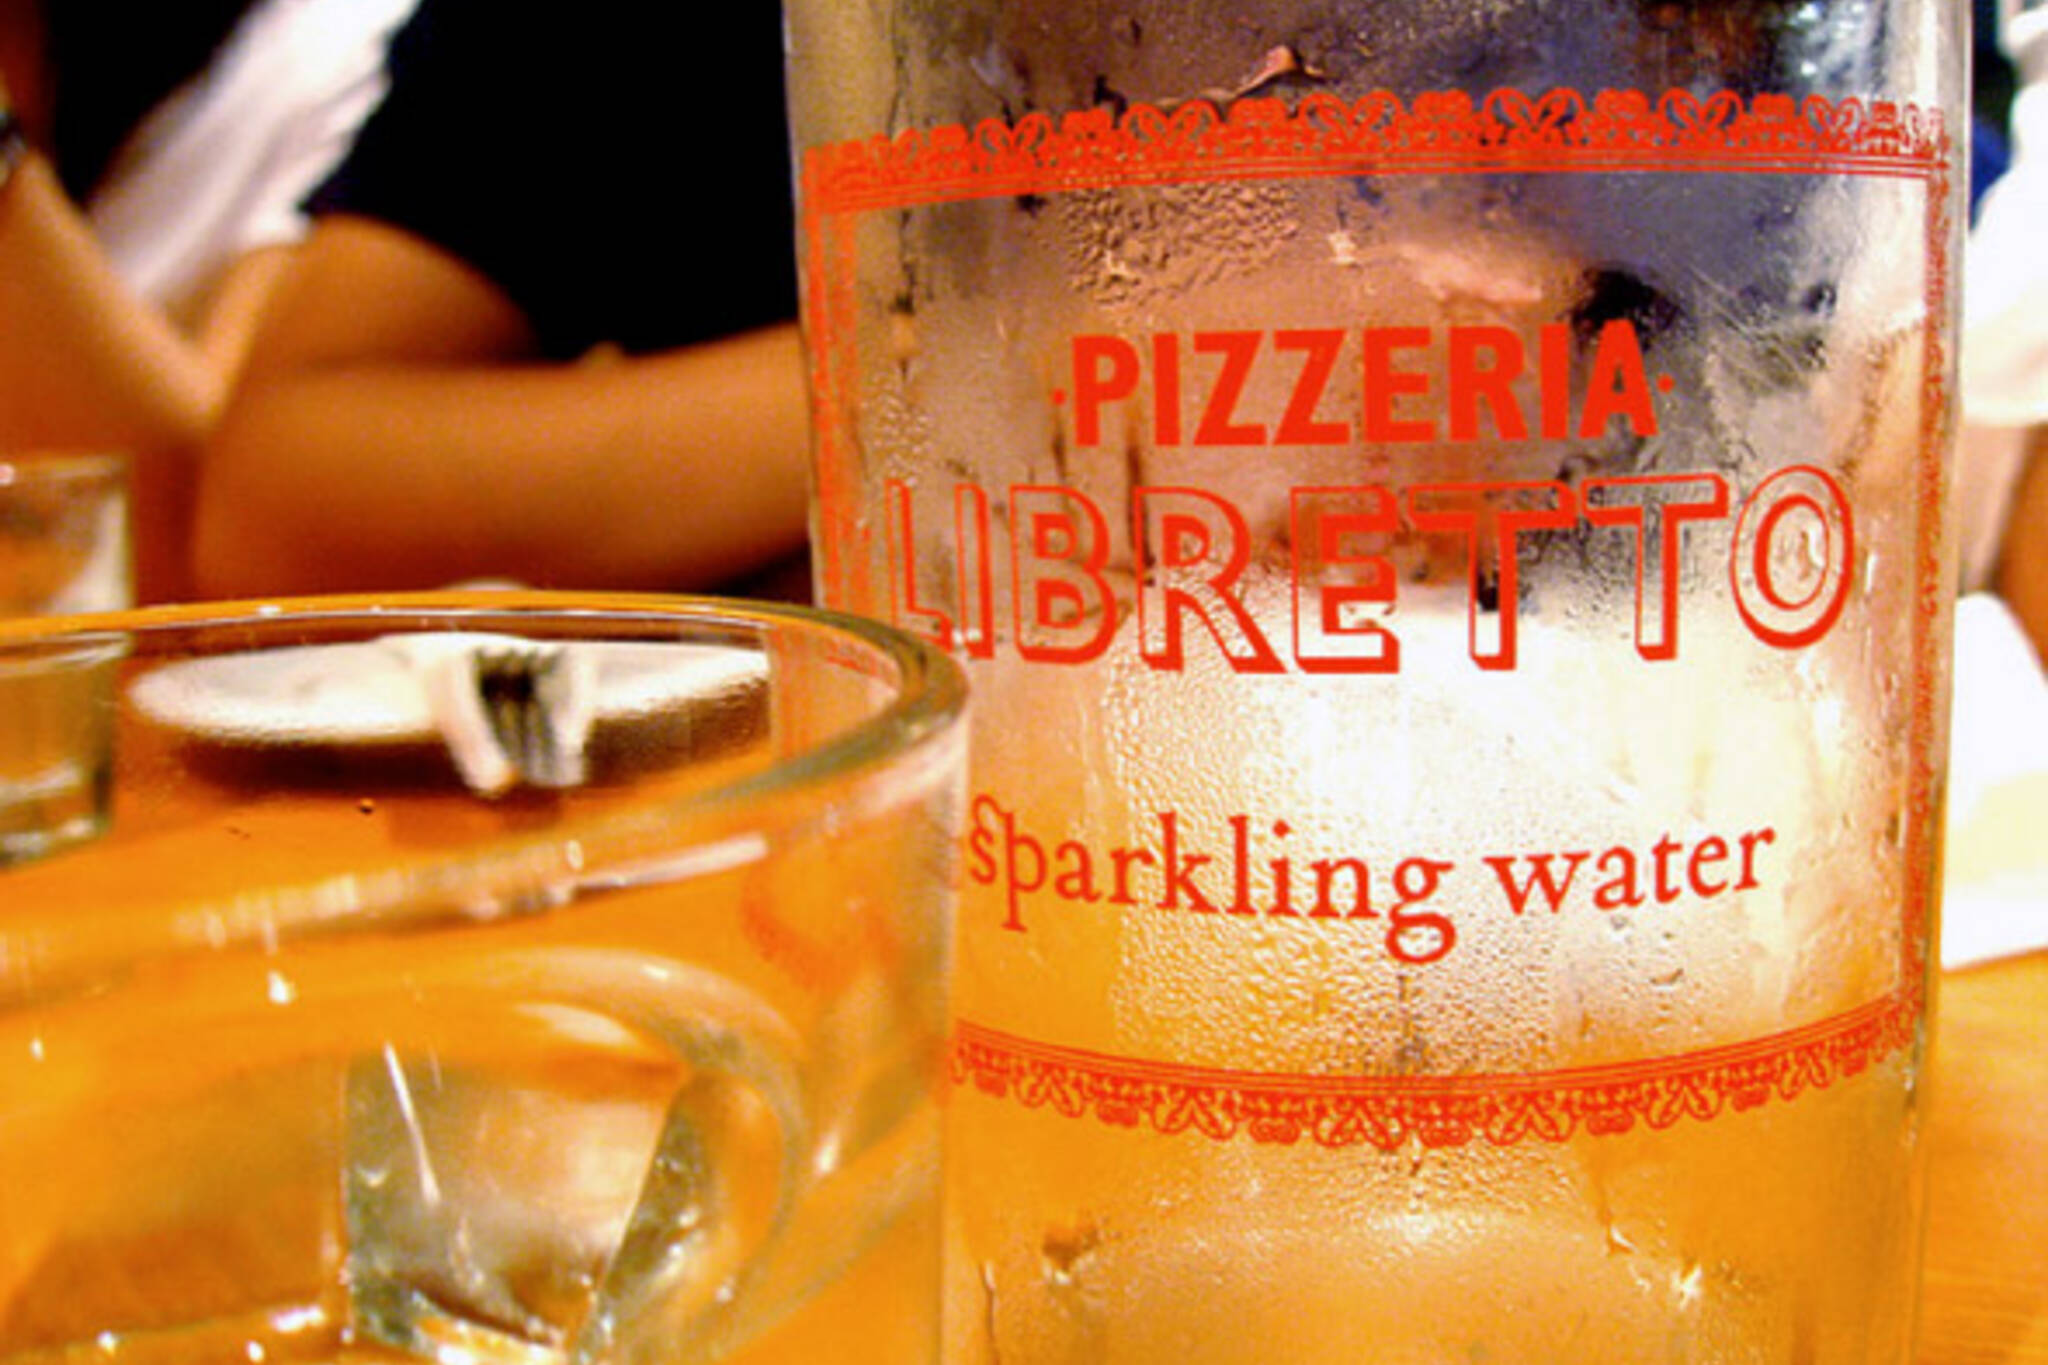 Pizzeria Libretto second location